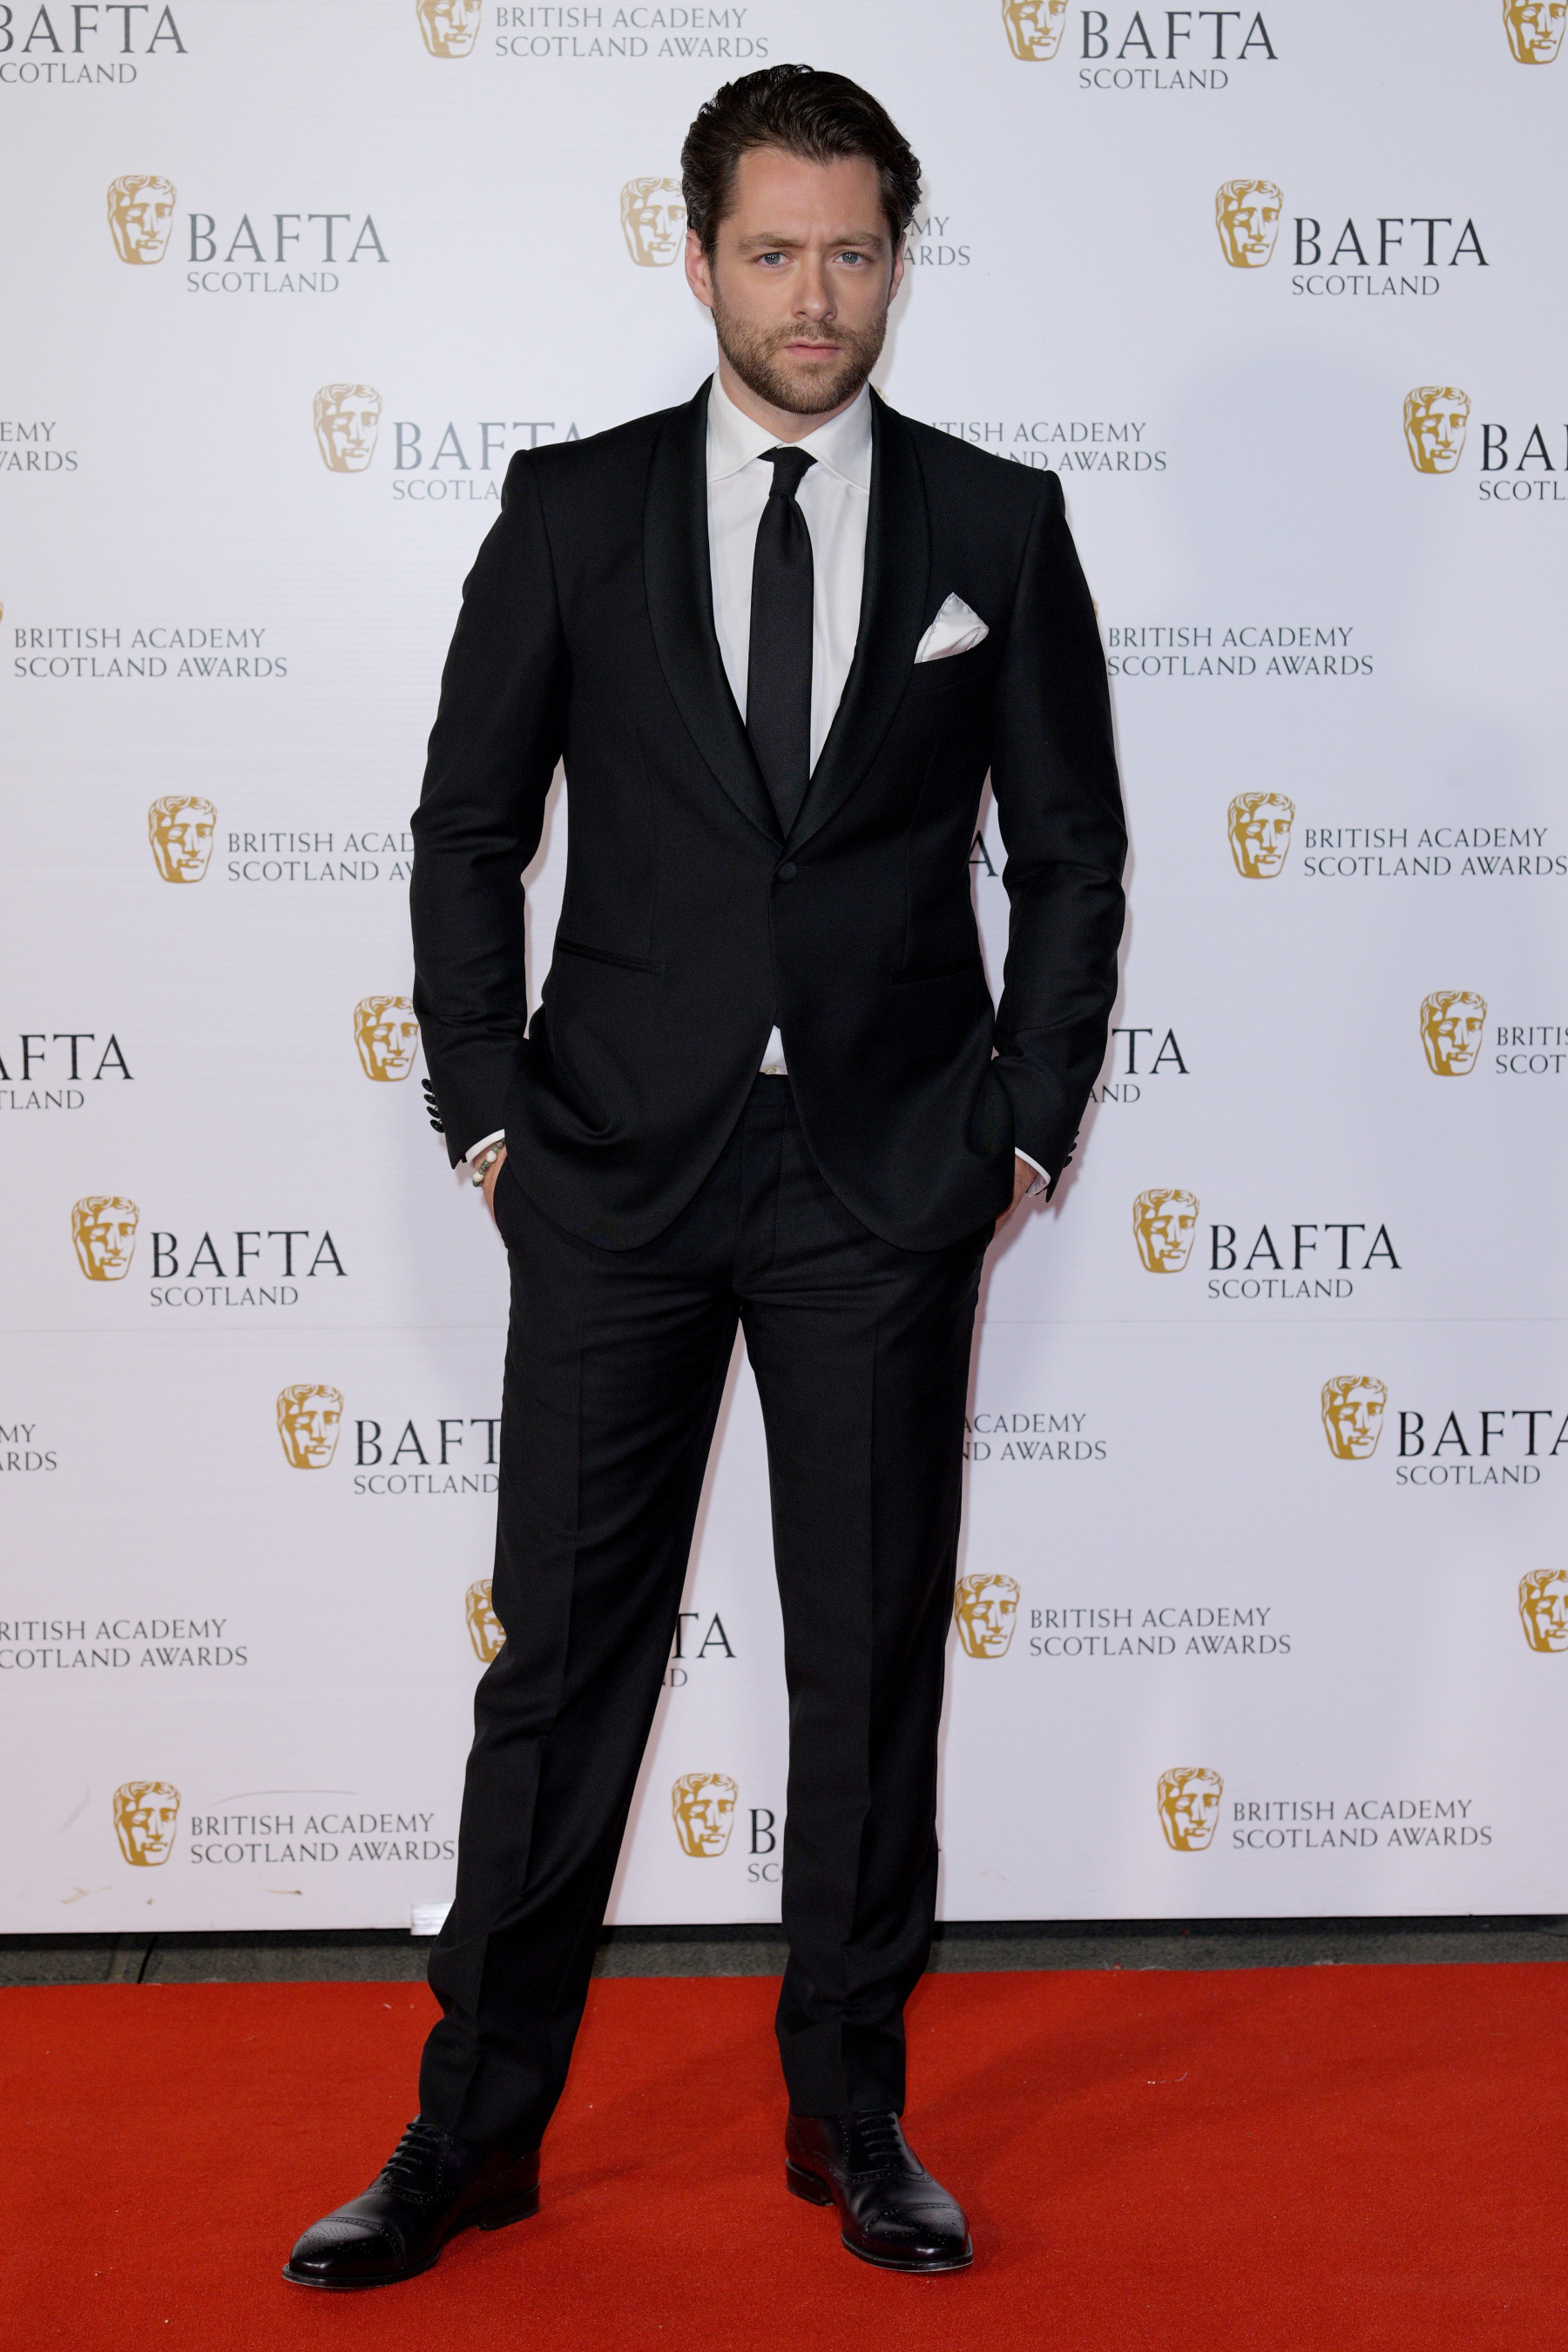 Richard x BAFTA's3.jpg